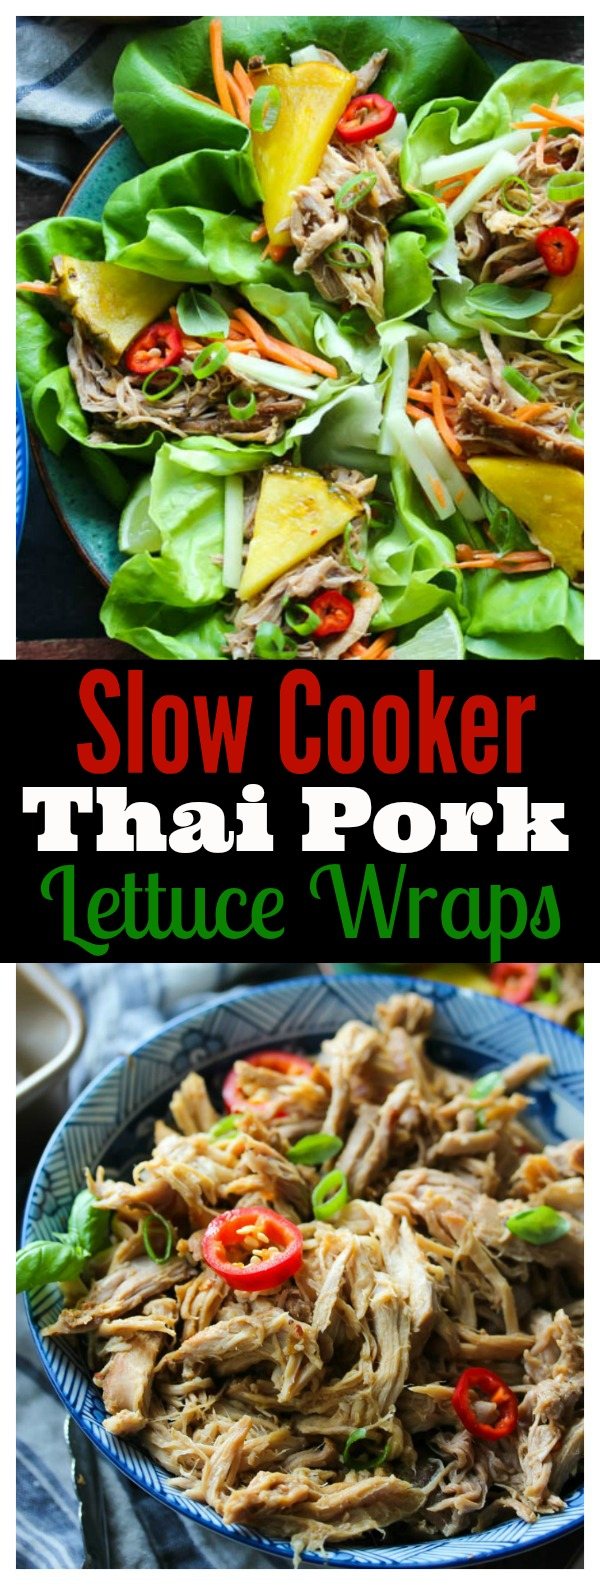 Slow Cooker Thai Pork Lettuce Wraps; an easy, no-fuss meal that's light on calories, yet full on flavor | dishingouthealth.com